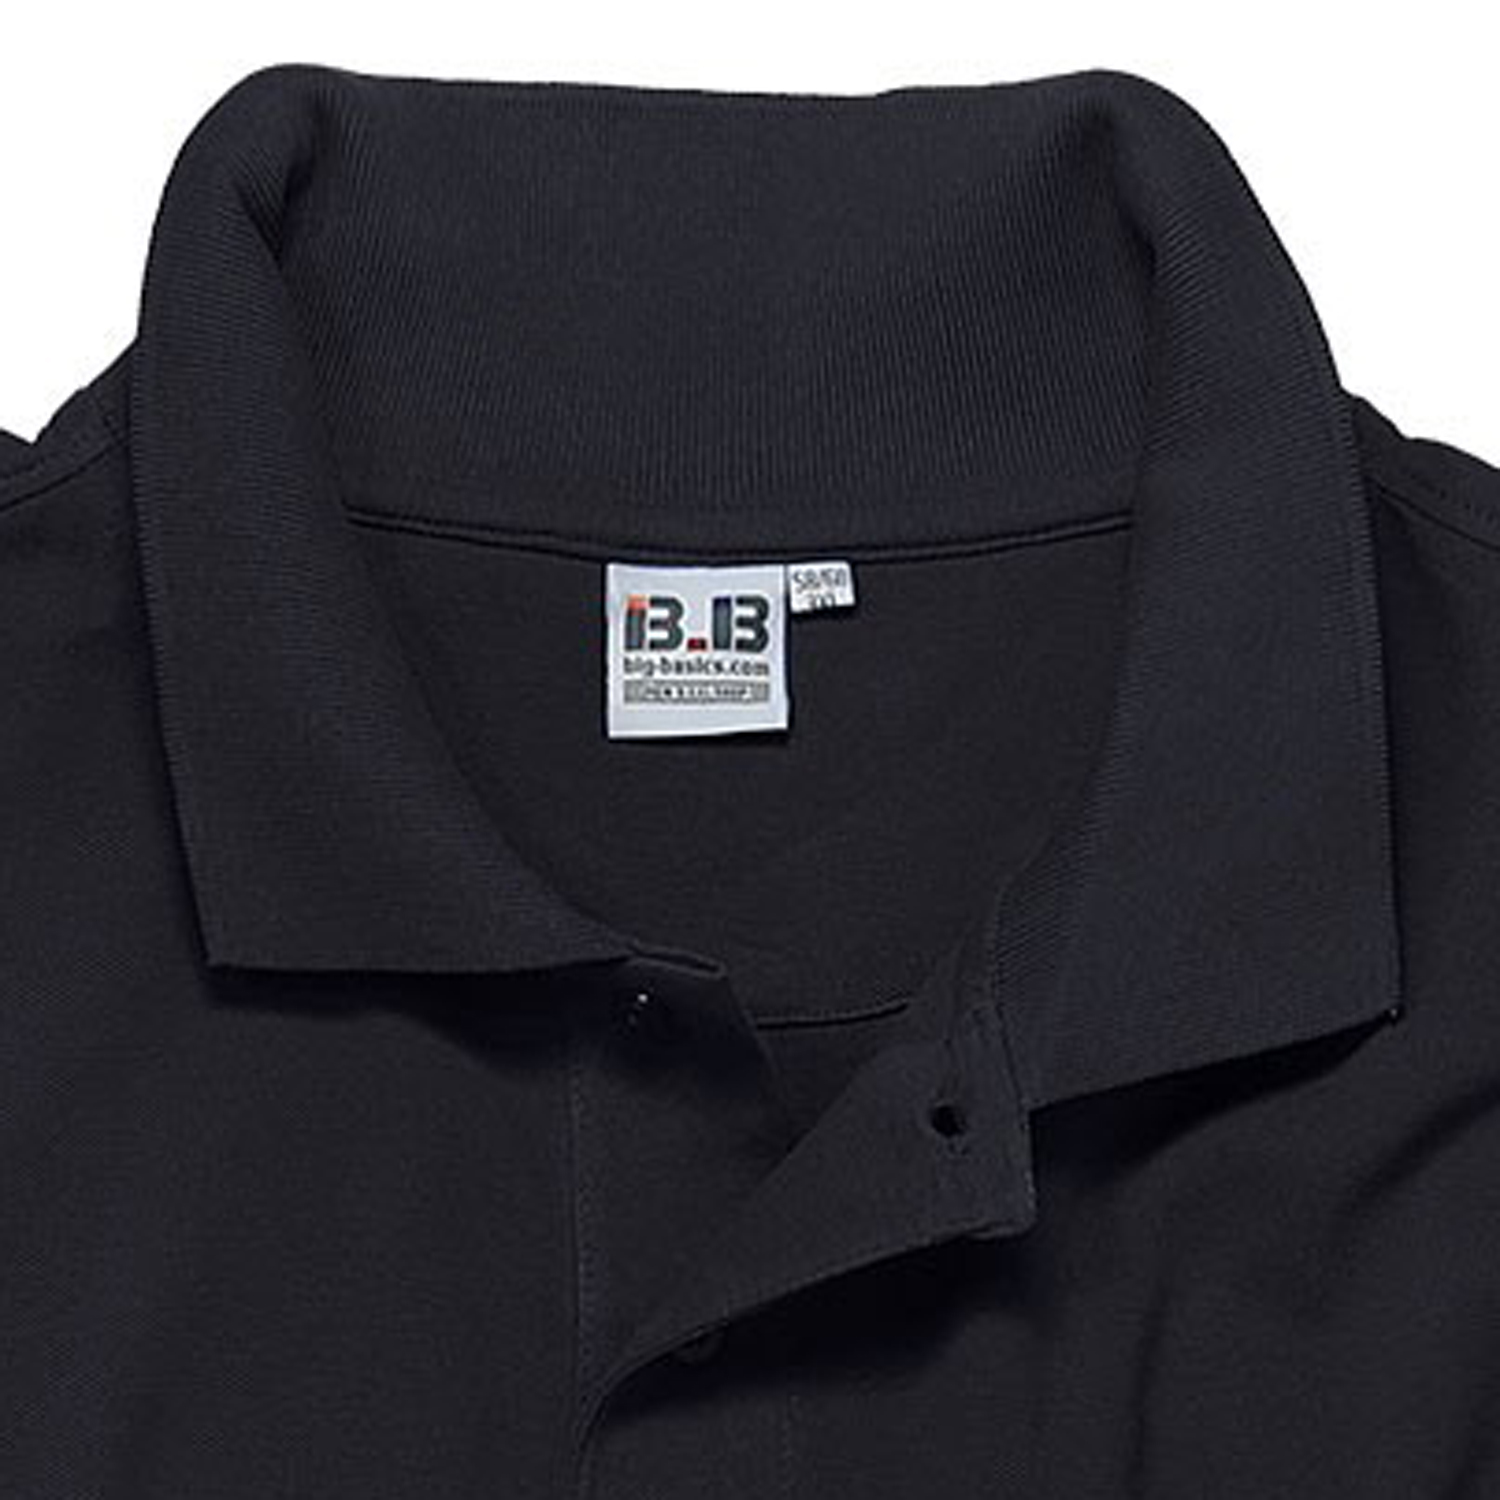 Detail Image to Black polo shirt by Big-Basics in oversizes up to 8XL